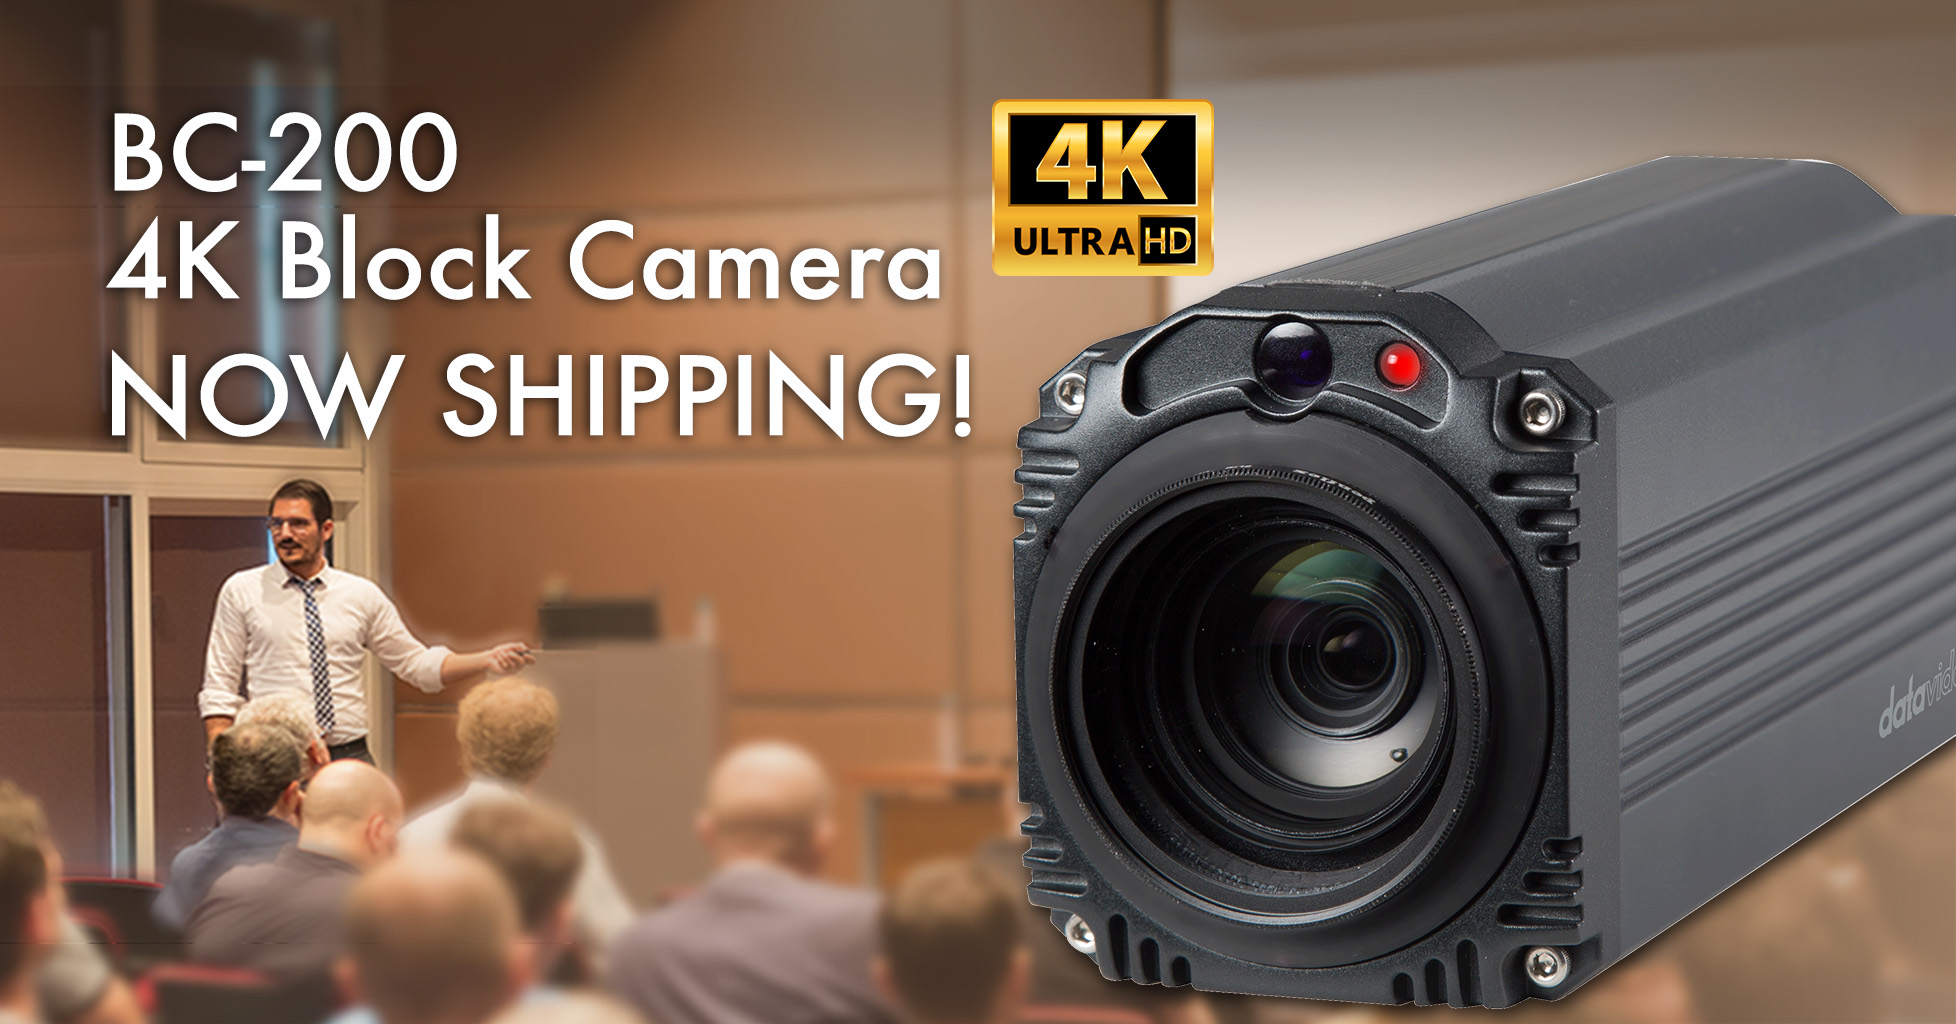 Datavideo Announces BC-200 4K Block Camera is Now Shipping